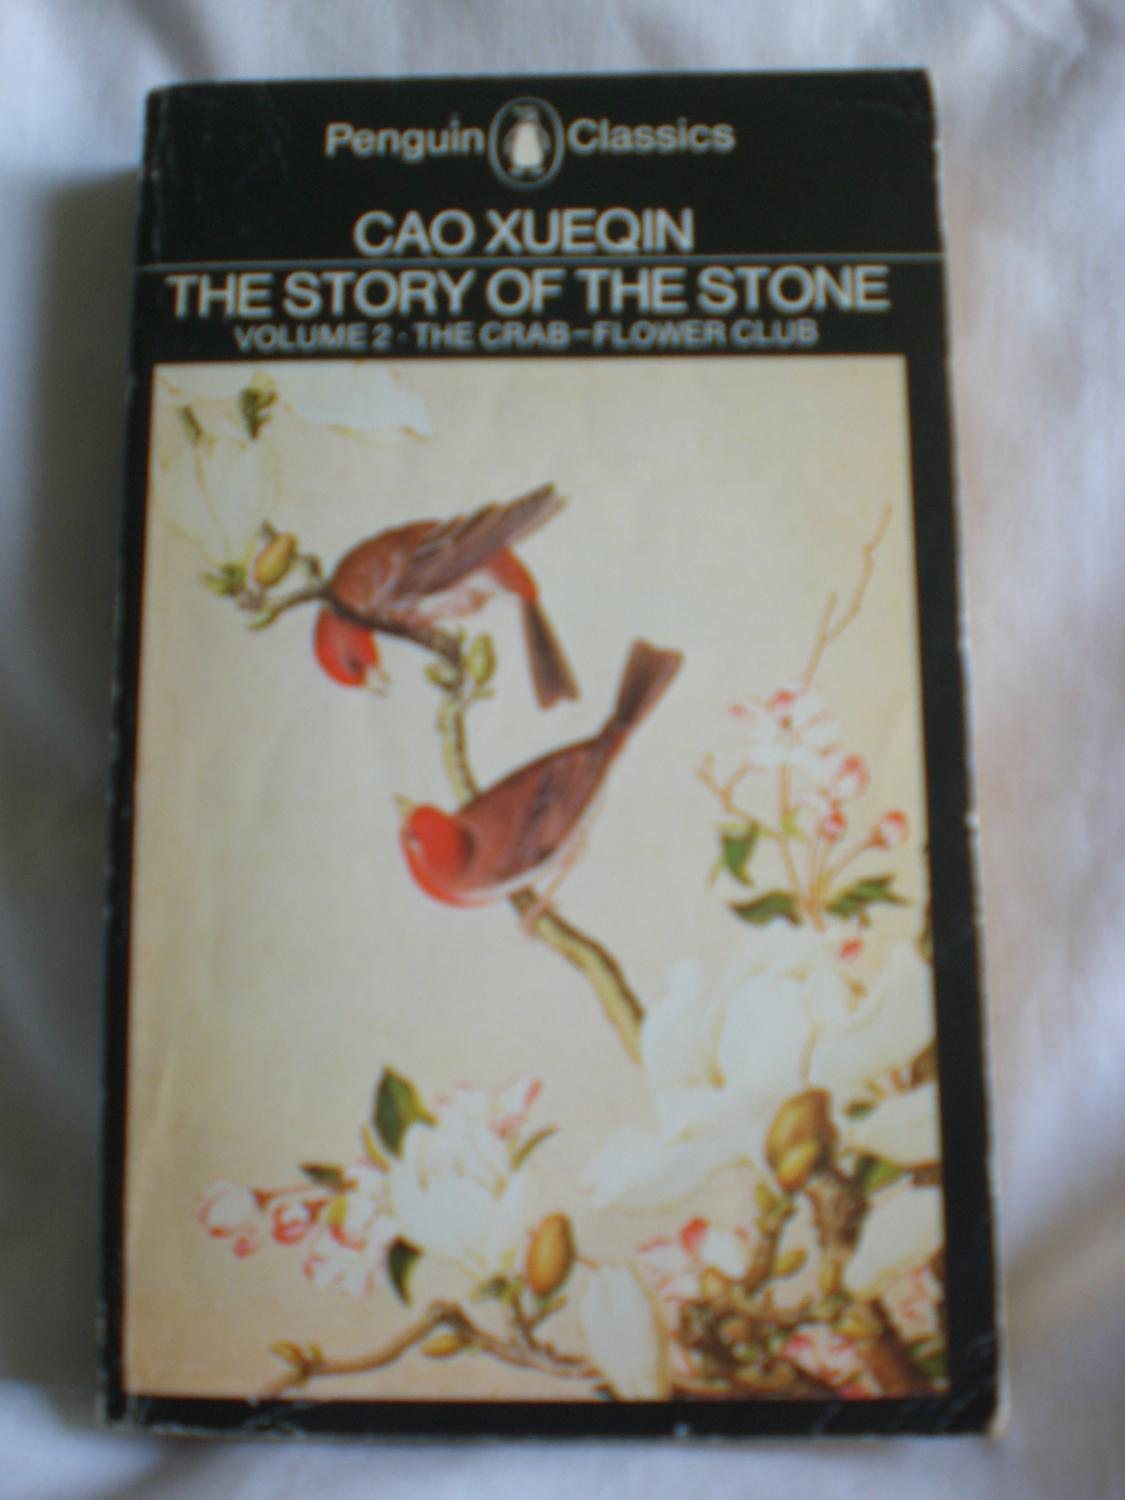 the story of the stone the crab flower club volume ii xueqin cao